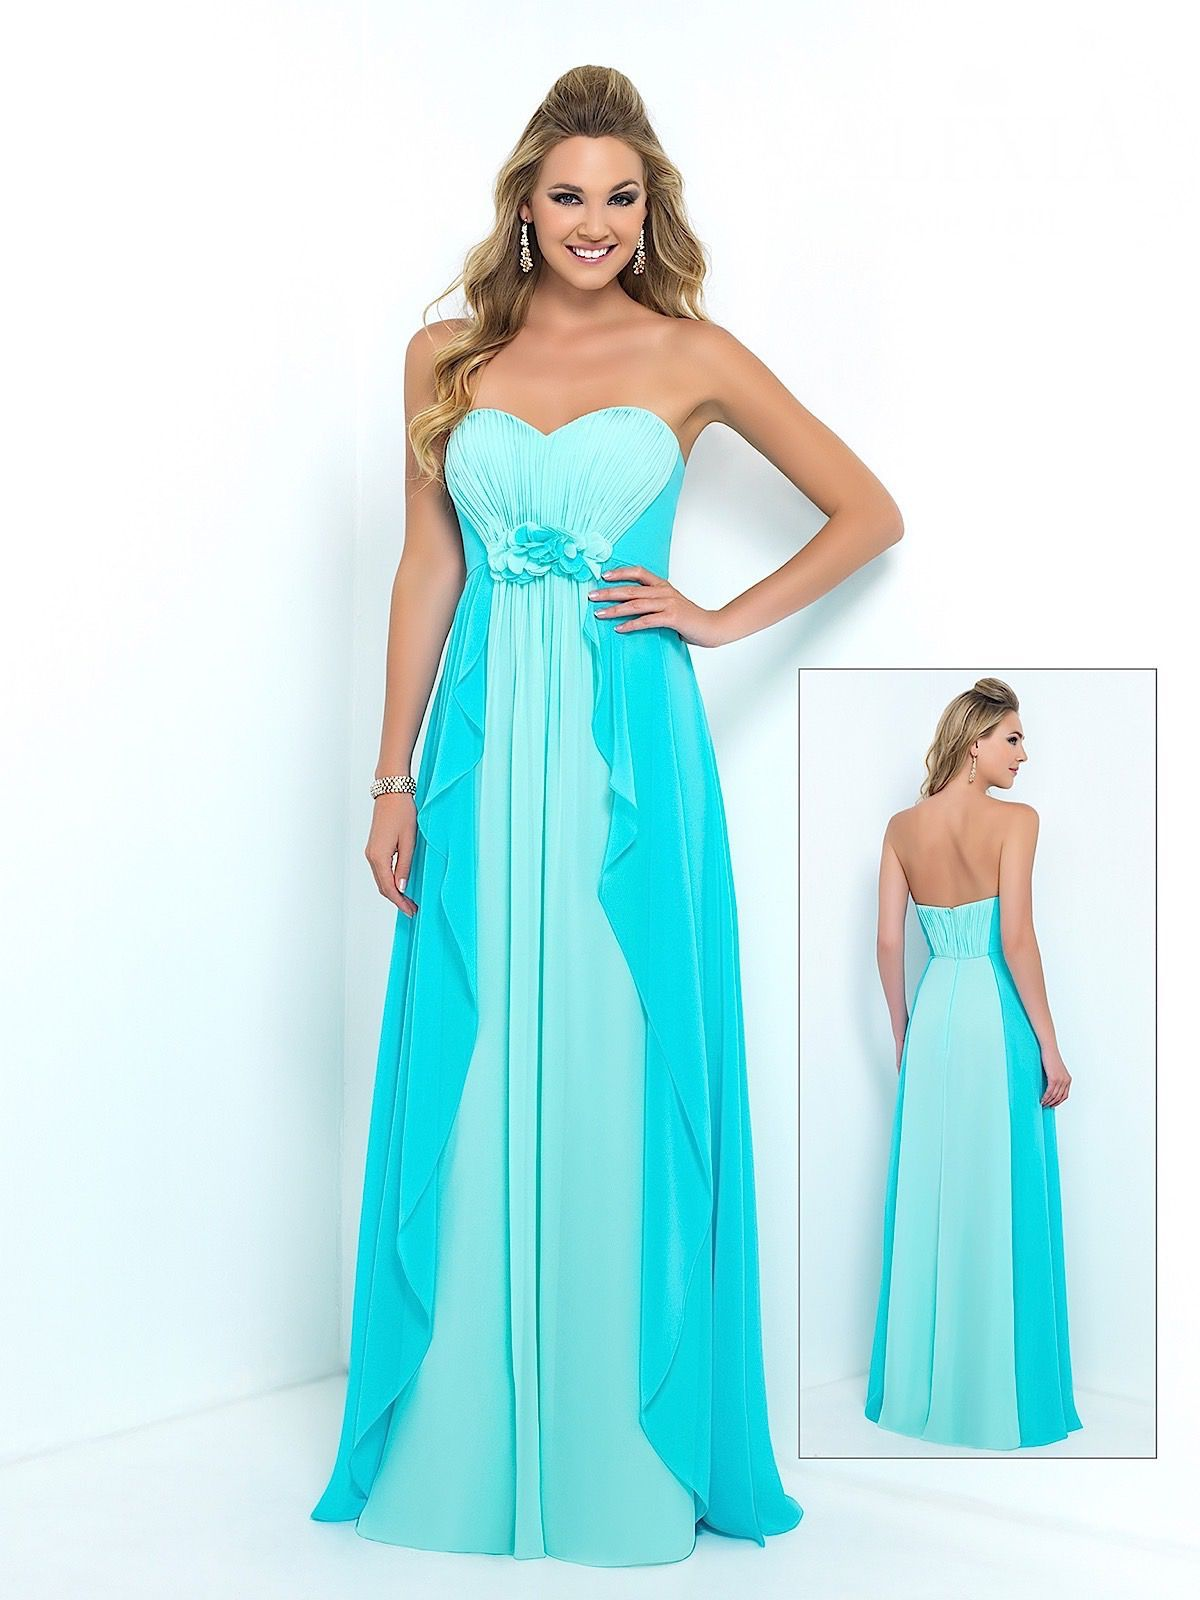 bridesmaid-dress-turquoise | Turquoise Bridesmaid Dress | Pinterest ...